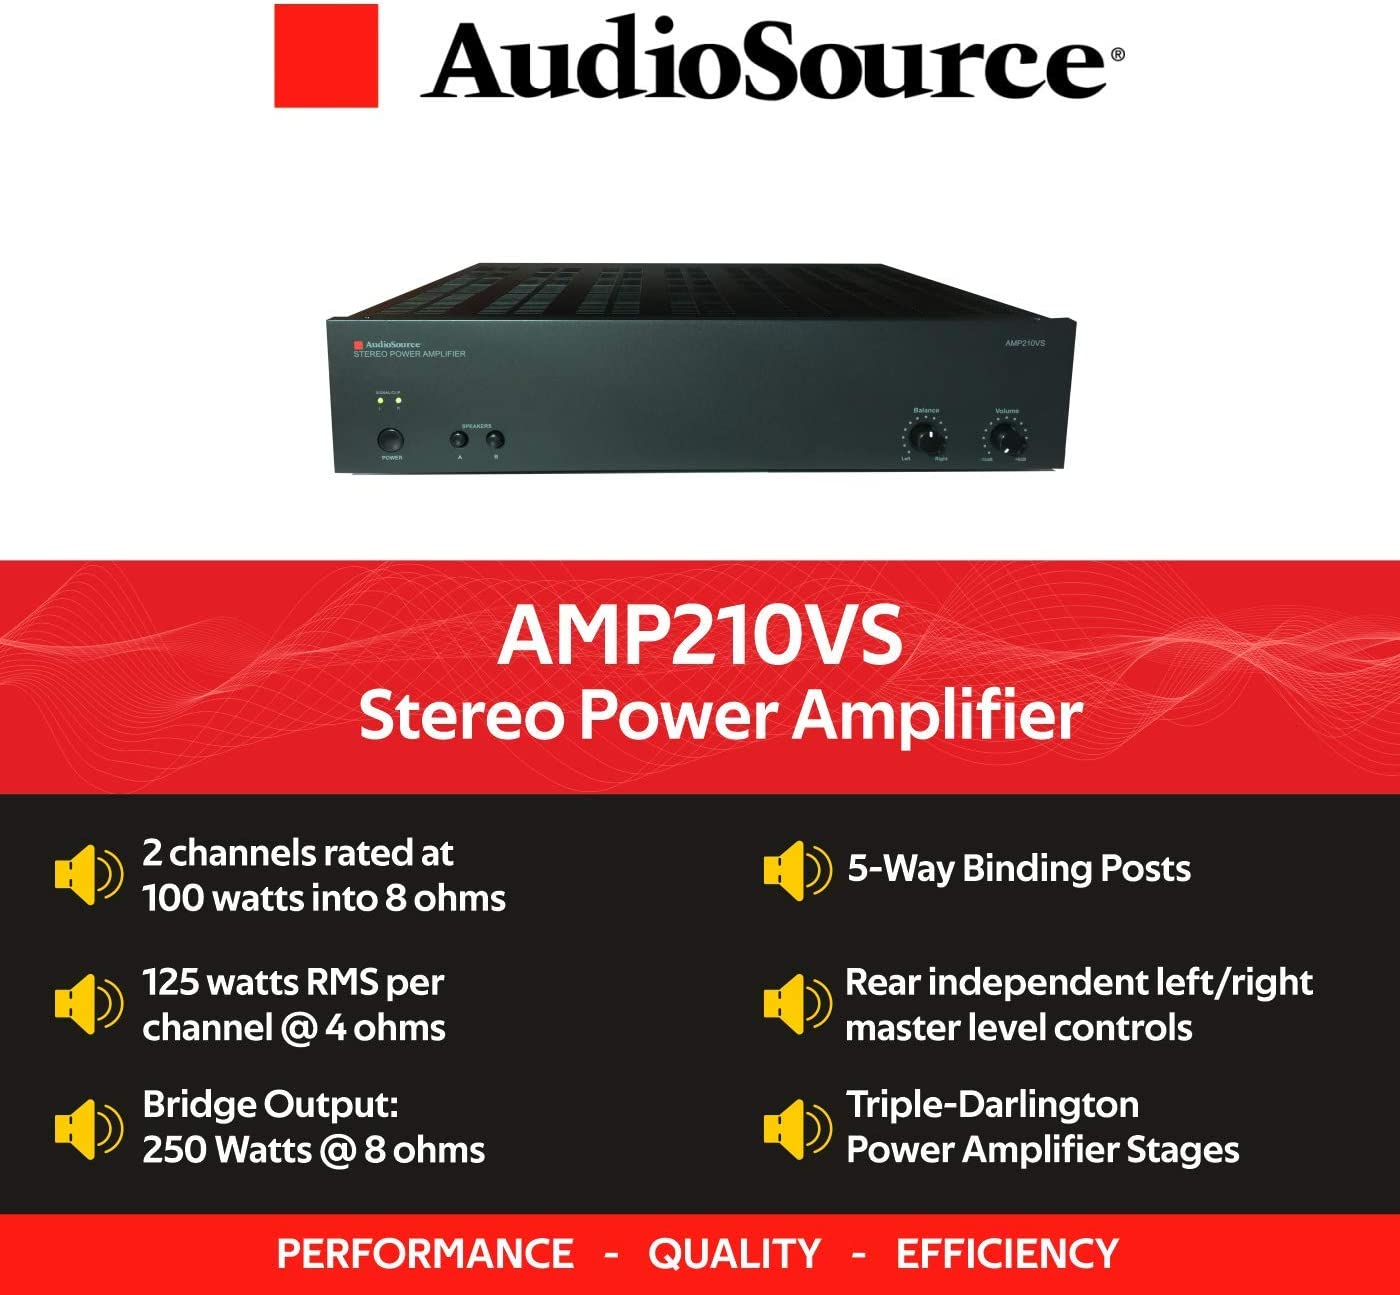 AudioSource Analog Amplifier, Stereo Power A Amplifier AMP210VS for Home Sound Systems